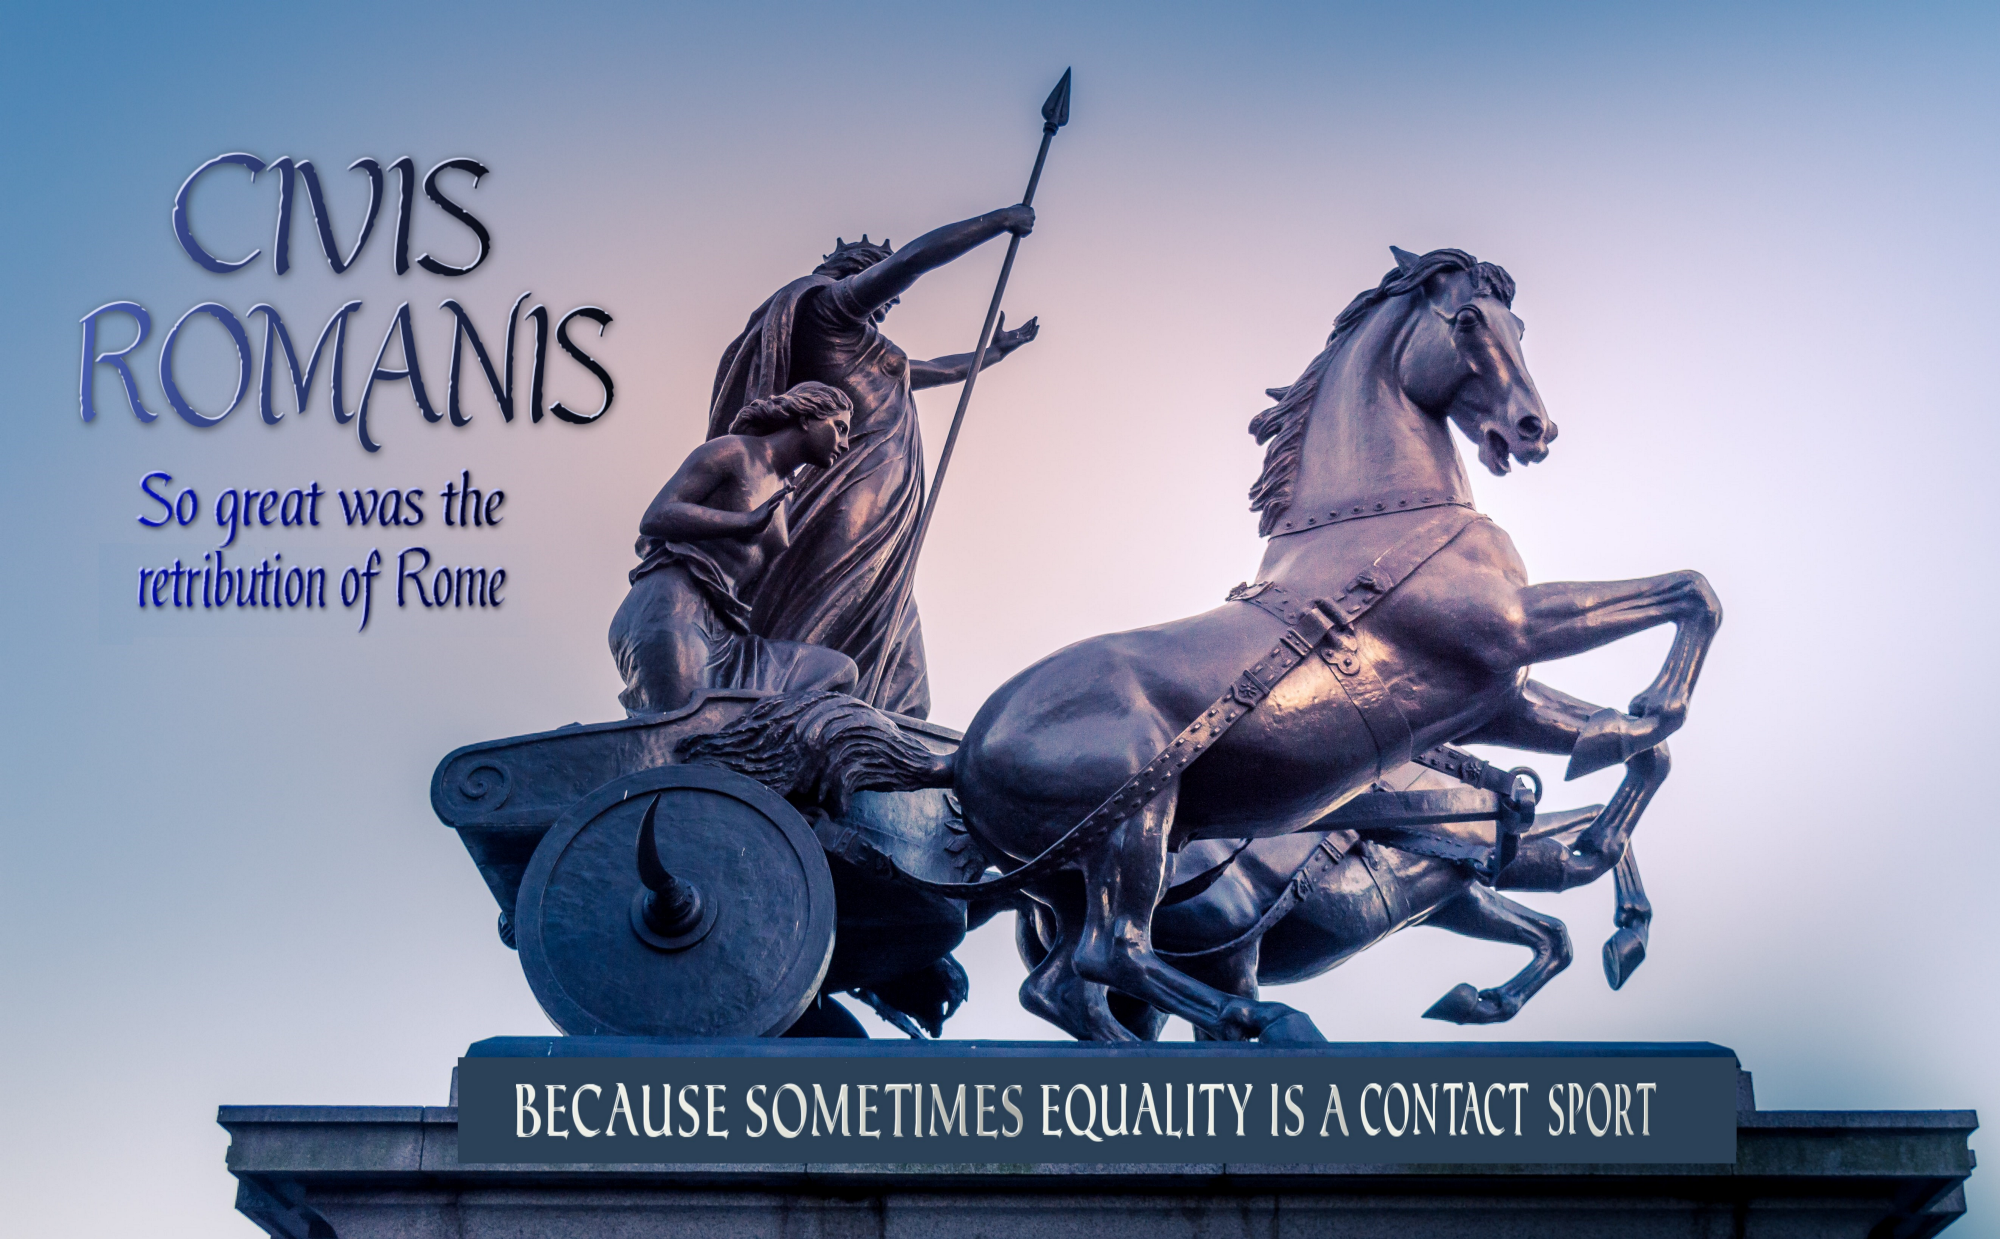 Roman chariot in a race for justice in policing because race is a contact sport